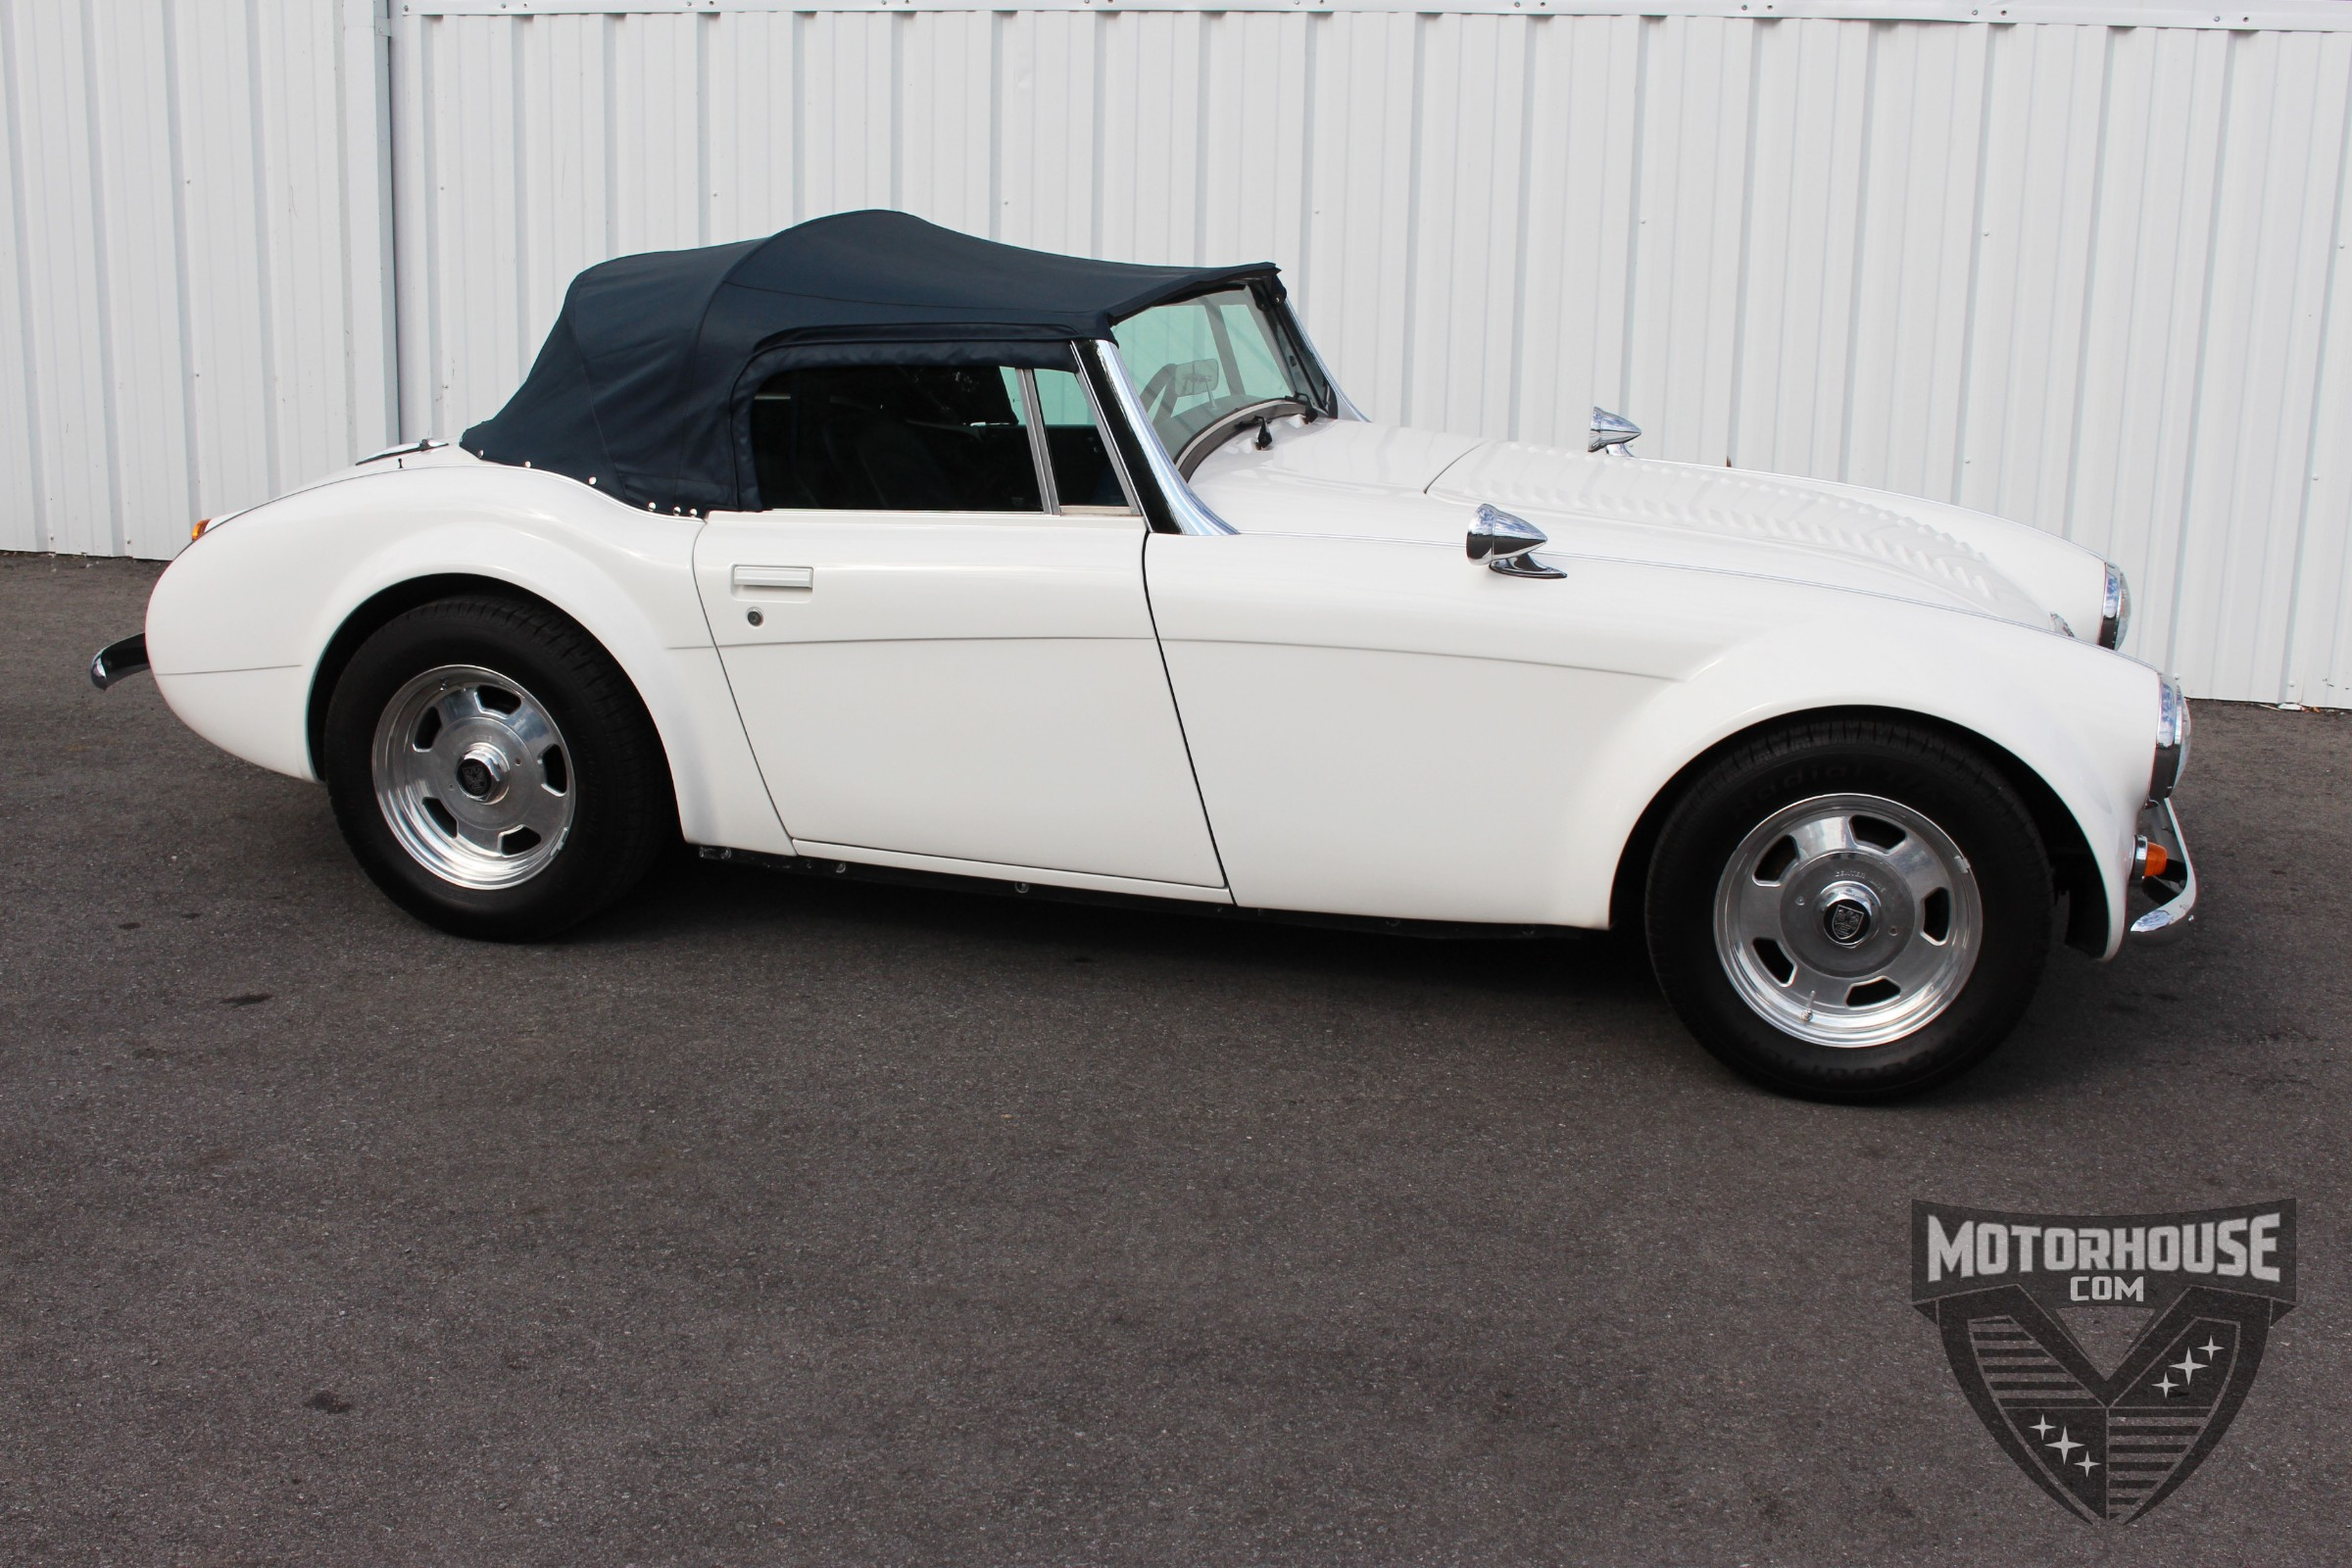 1965 Austin-Healey 3000Z Convertable (Stk: 1375) in Carleton Place - Image 23 of 48